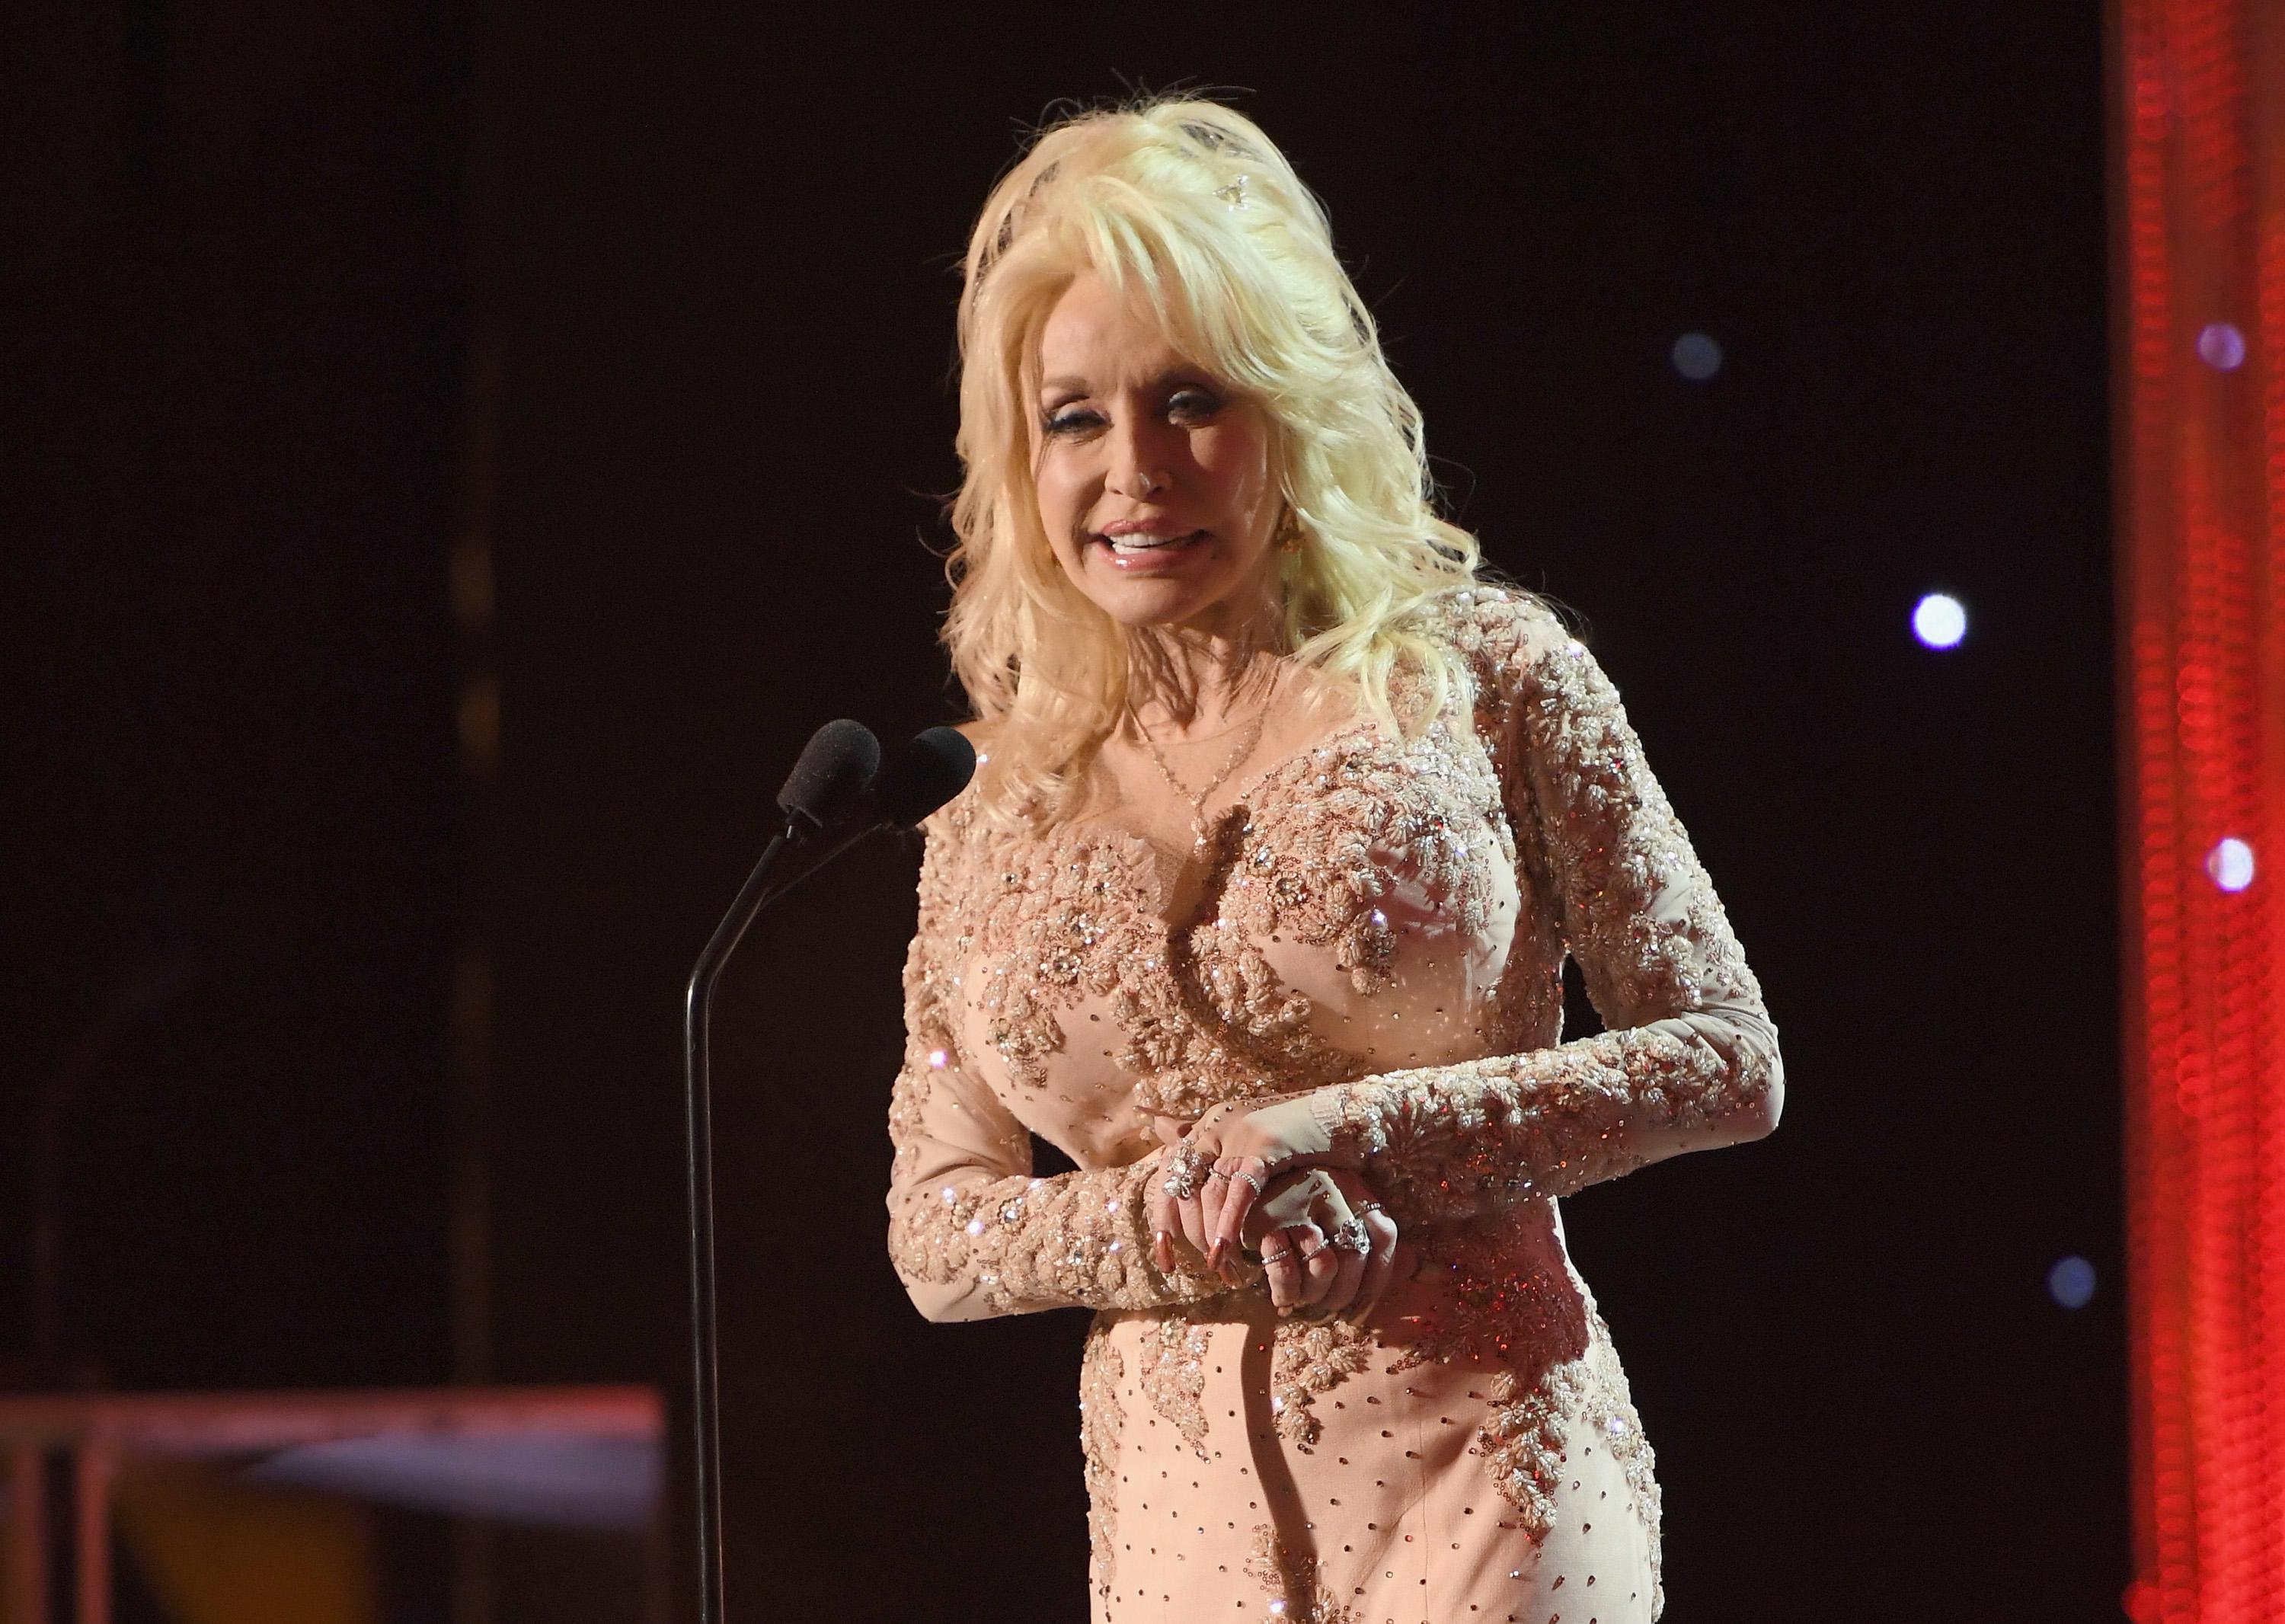 LOS ANGELES, CA - JANUARY 29:  Singer Dolly Parton speaks onstage during The 23rd Annual Screen Actors Guild Awards at The Shrine Auditorium on January 29, 2017 in Los Angeles, California. 26592_009  (Photo by Dimitrios Kambouris/Getty Images for TNT)